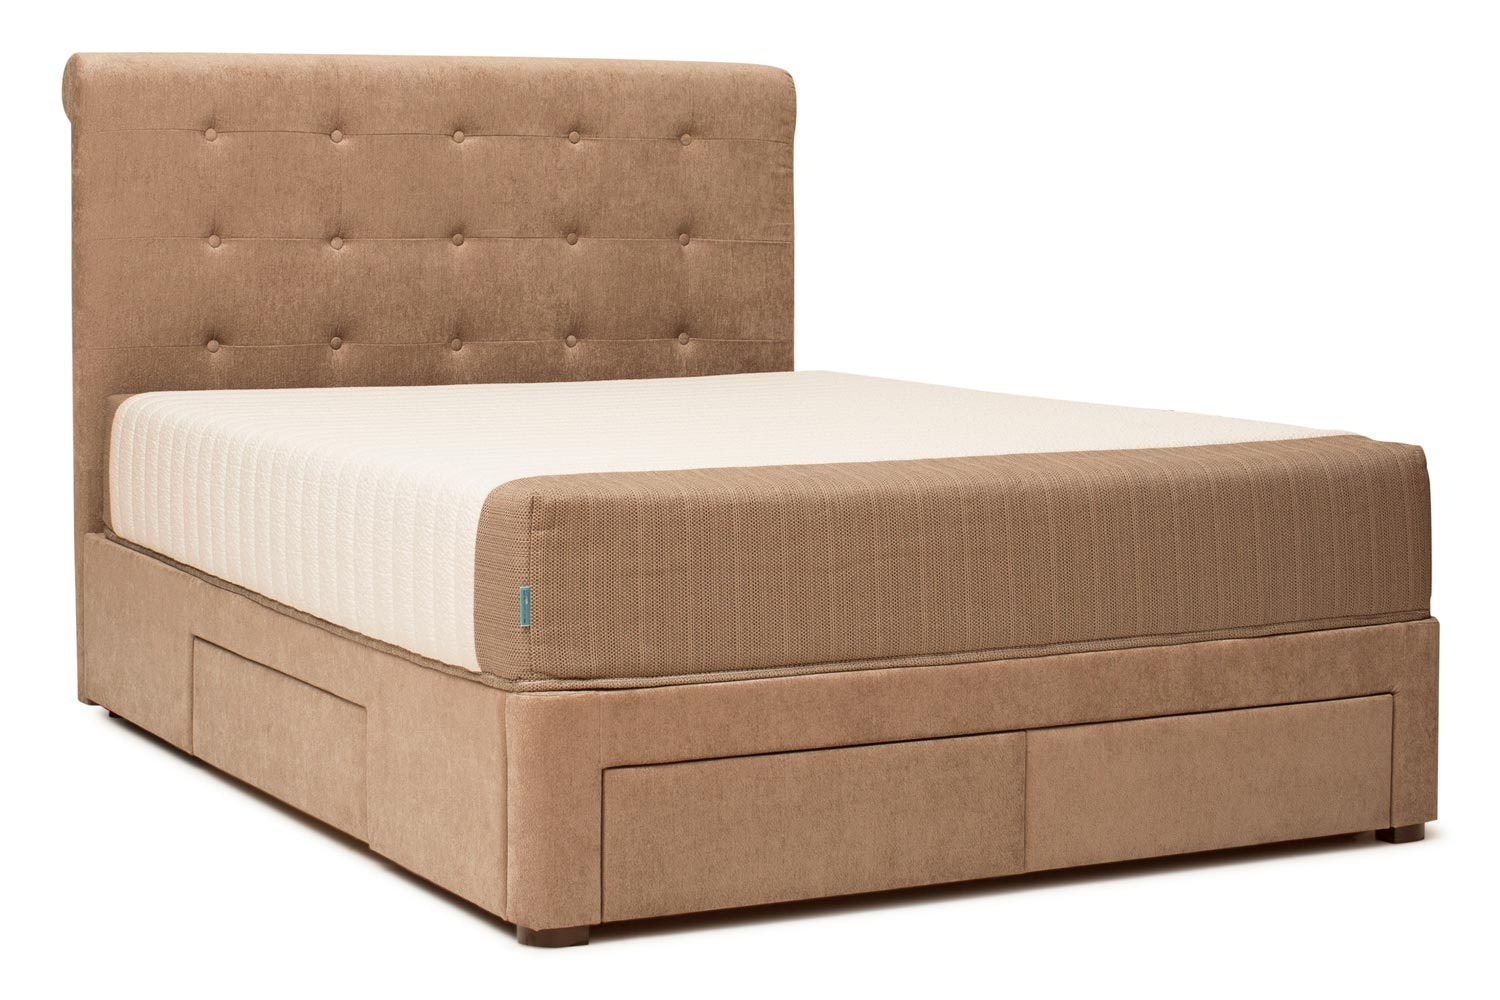 Duval Bed | Scroll Top with Storage | Mink | 4ft6